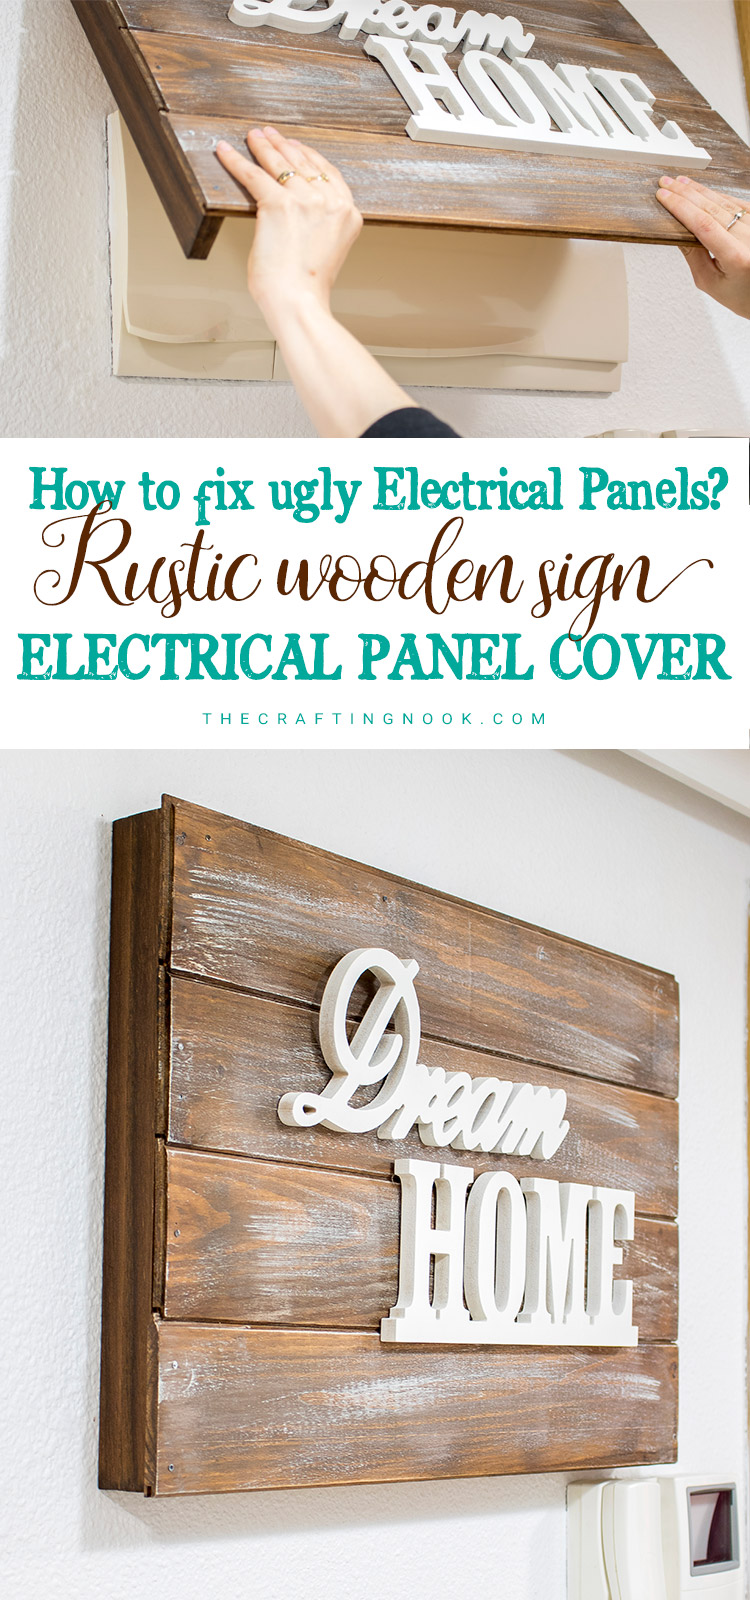 Rustic Wooden Sign Electrical Panel Cover